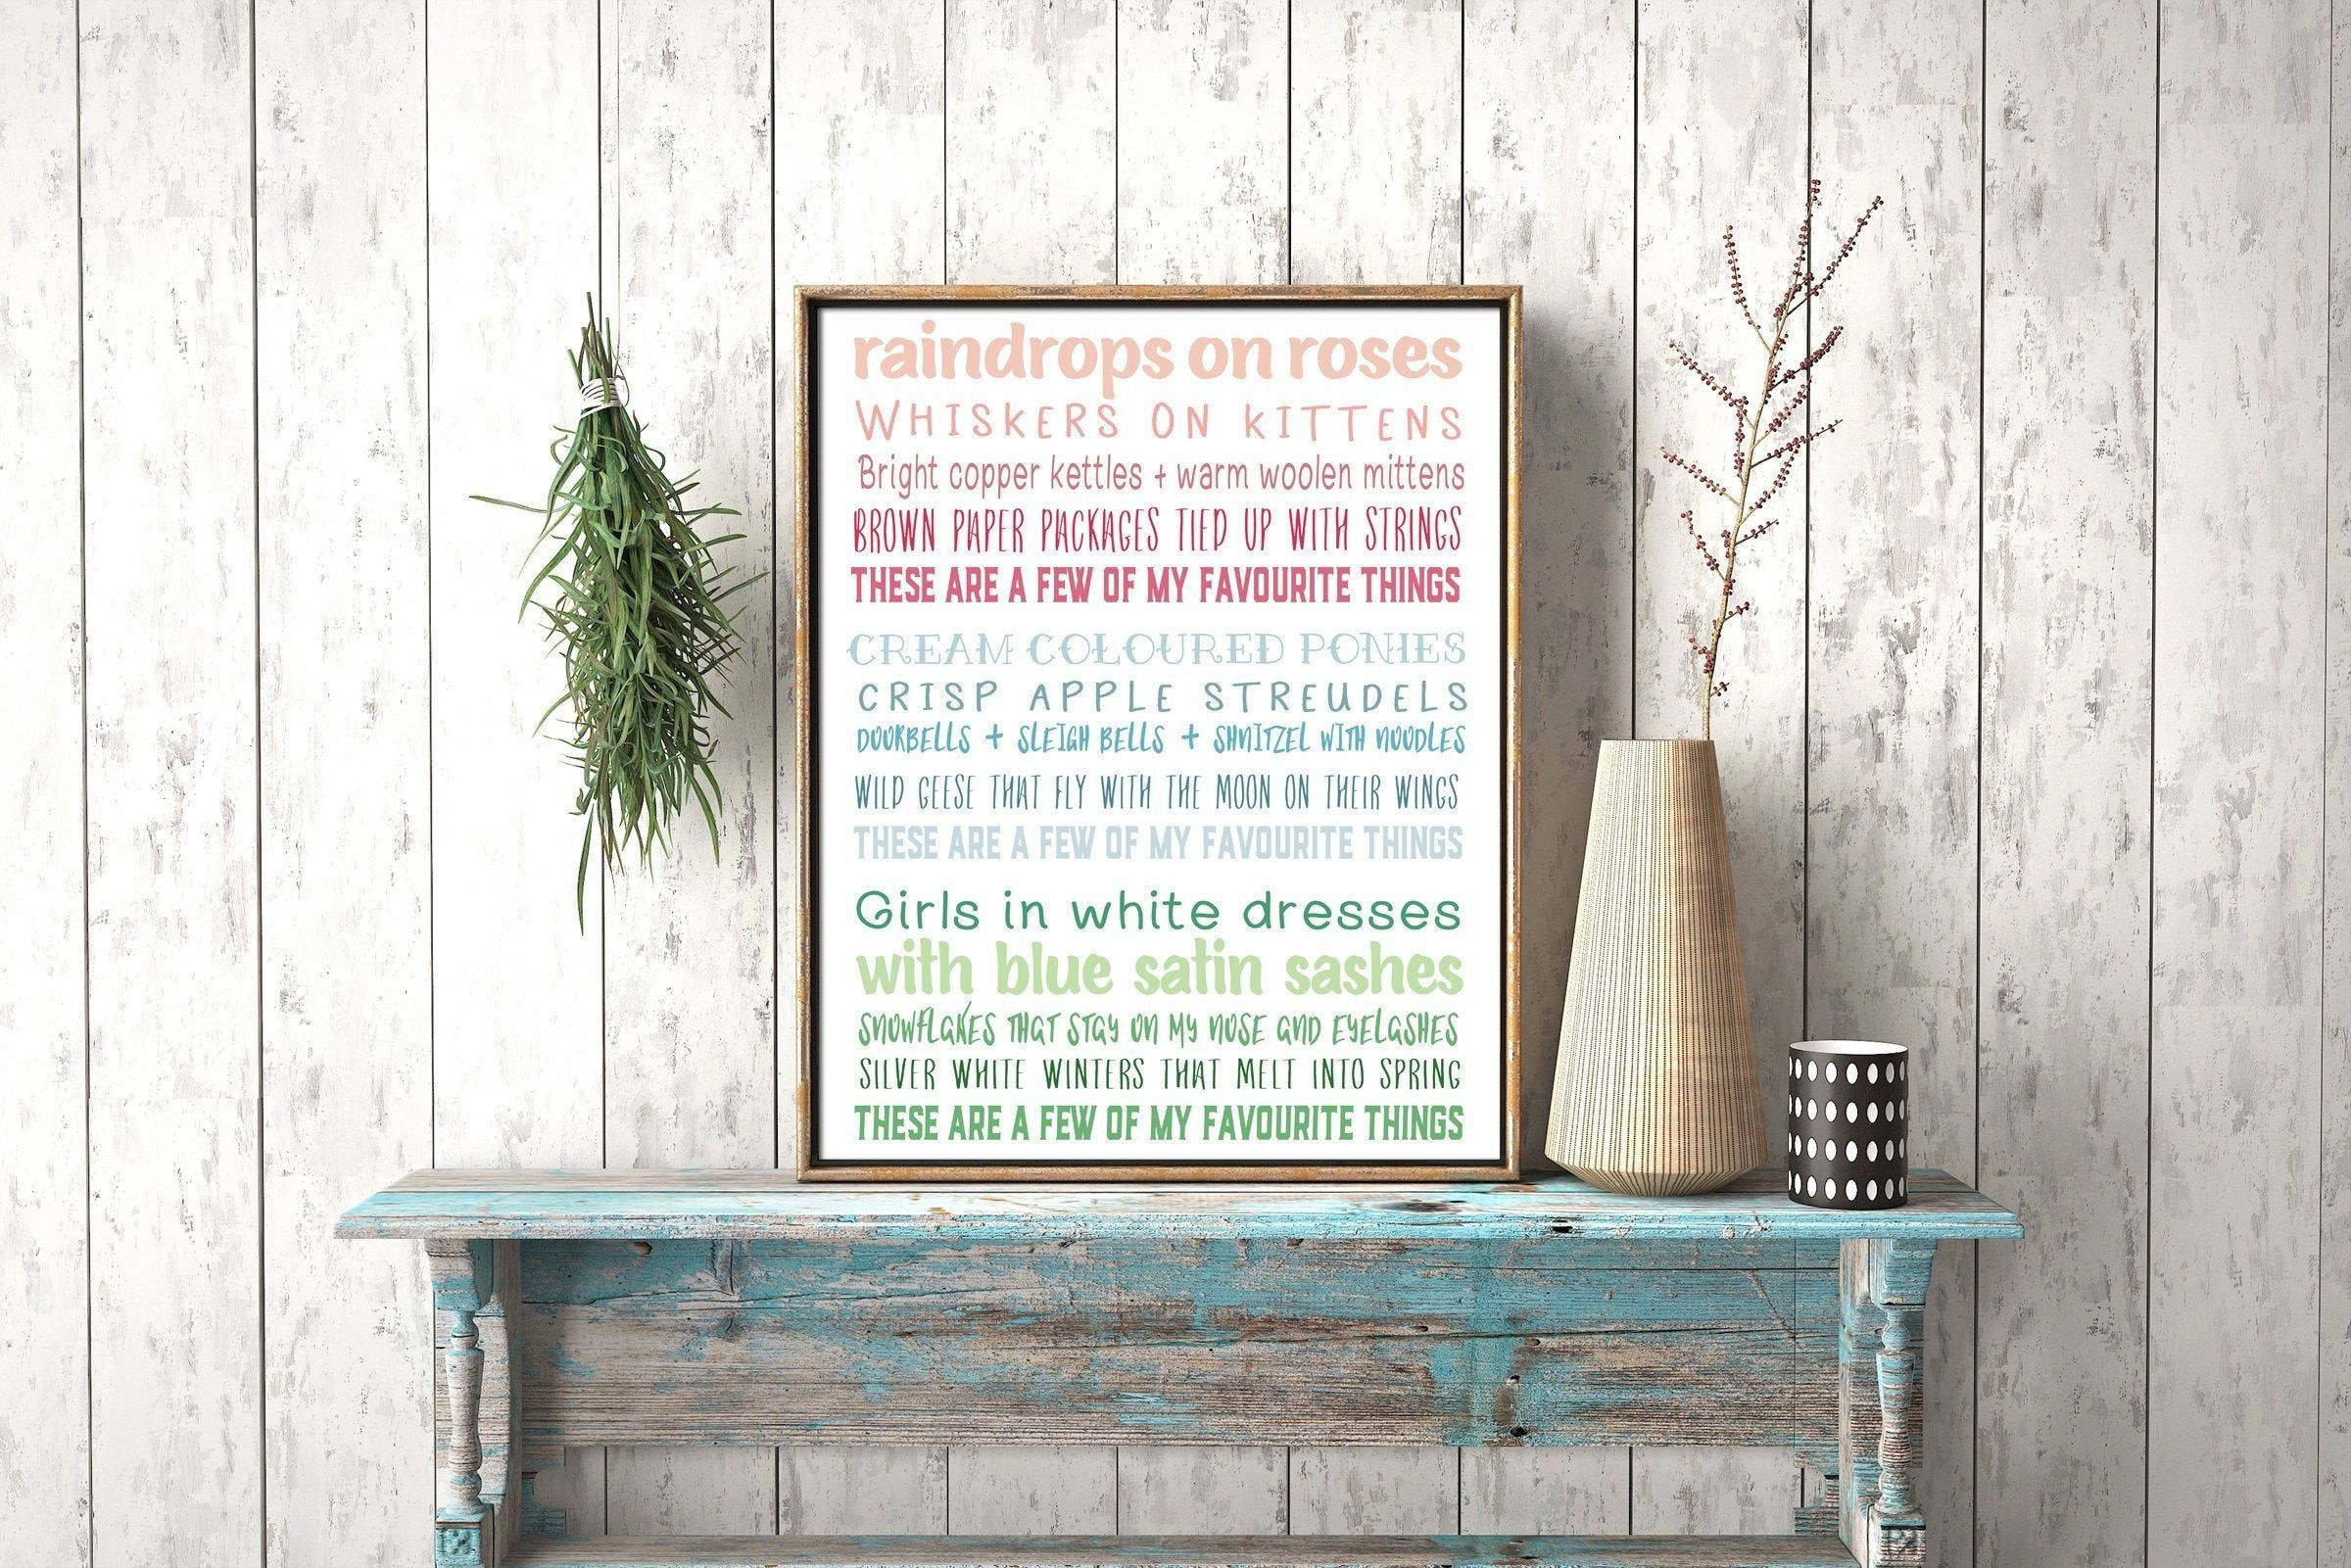 A fun poster with the lyrics. I like the different fonts